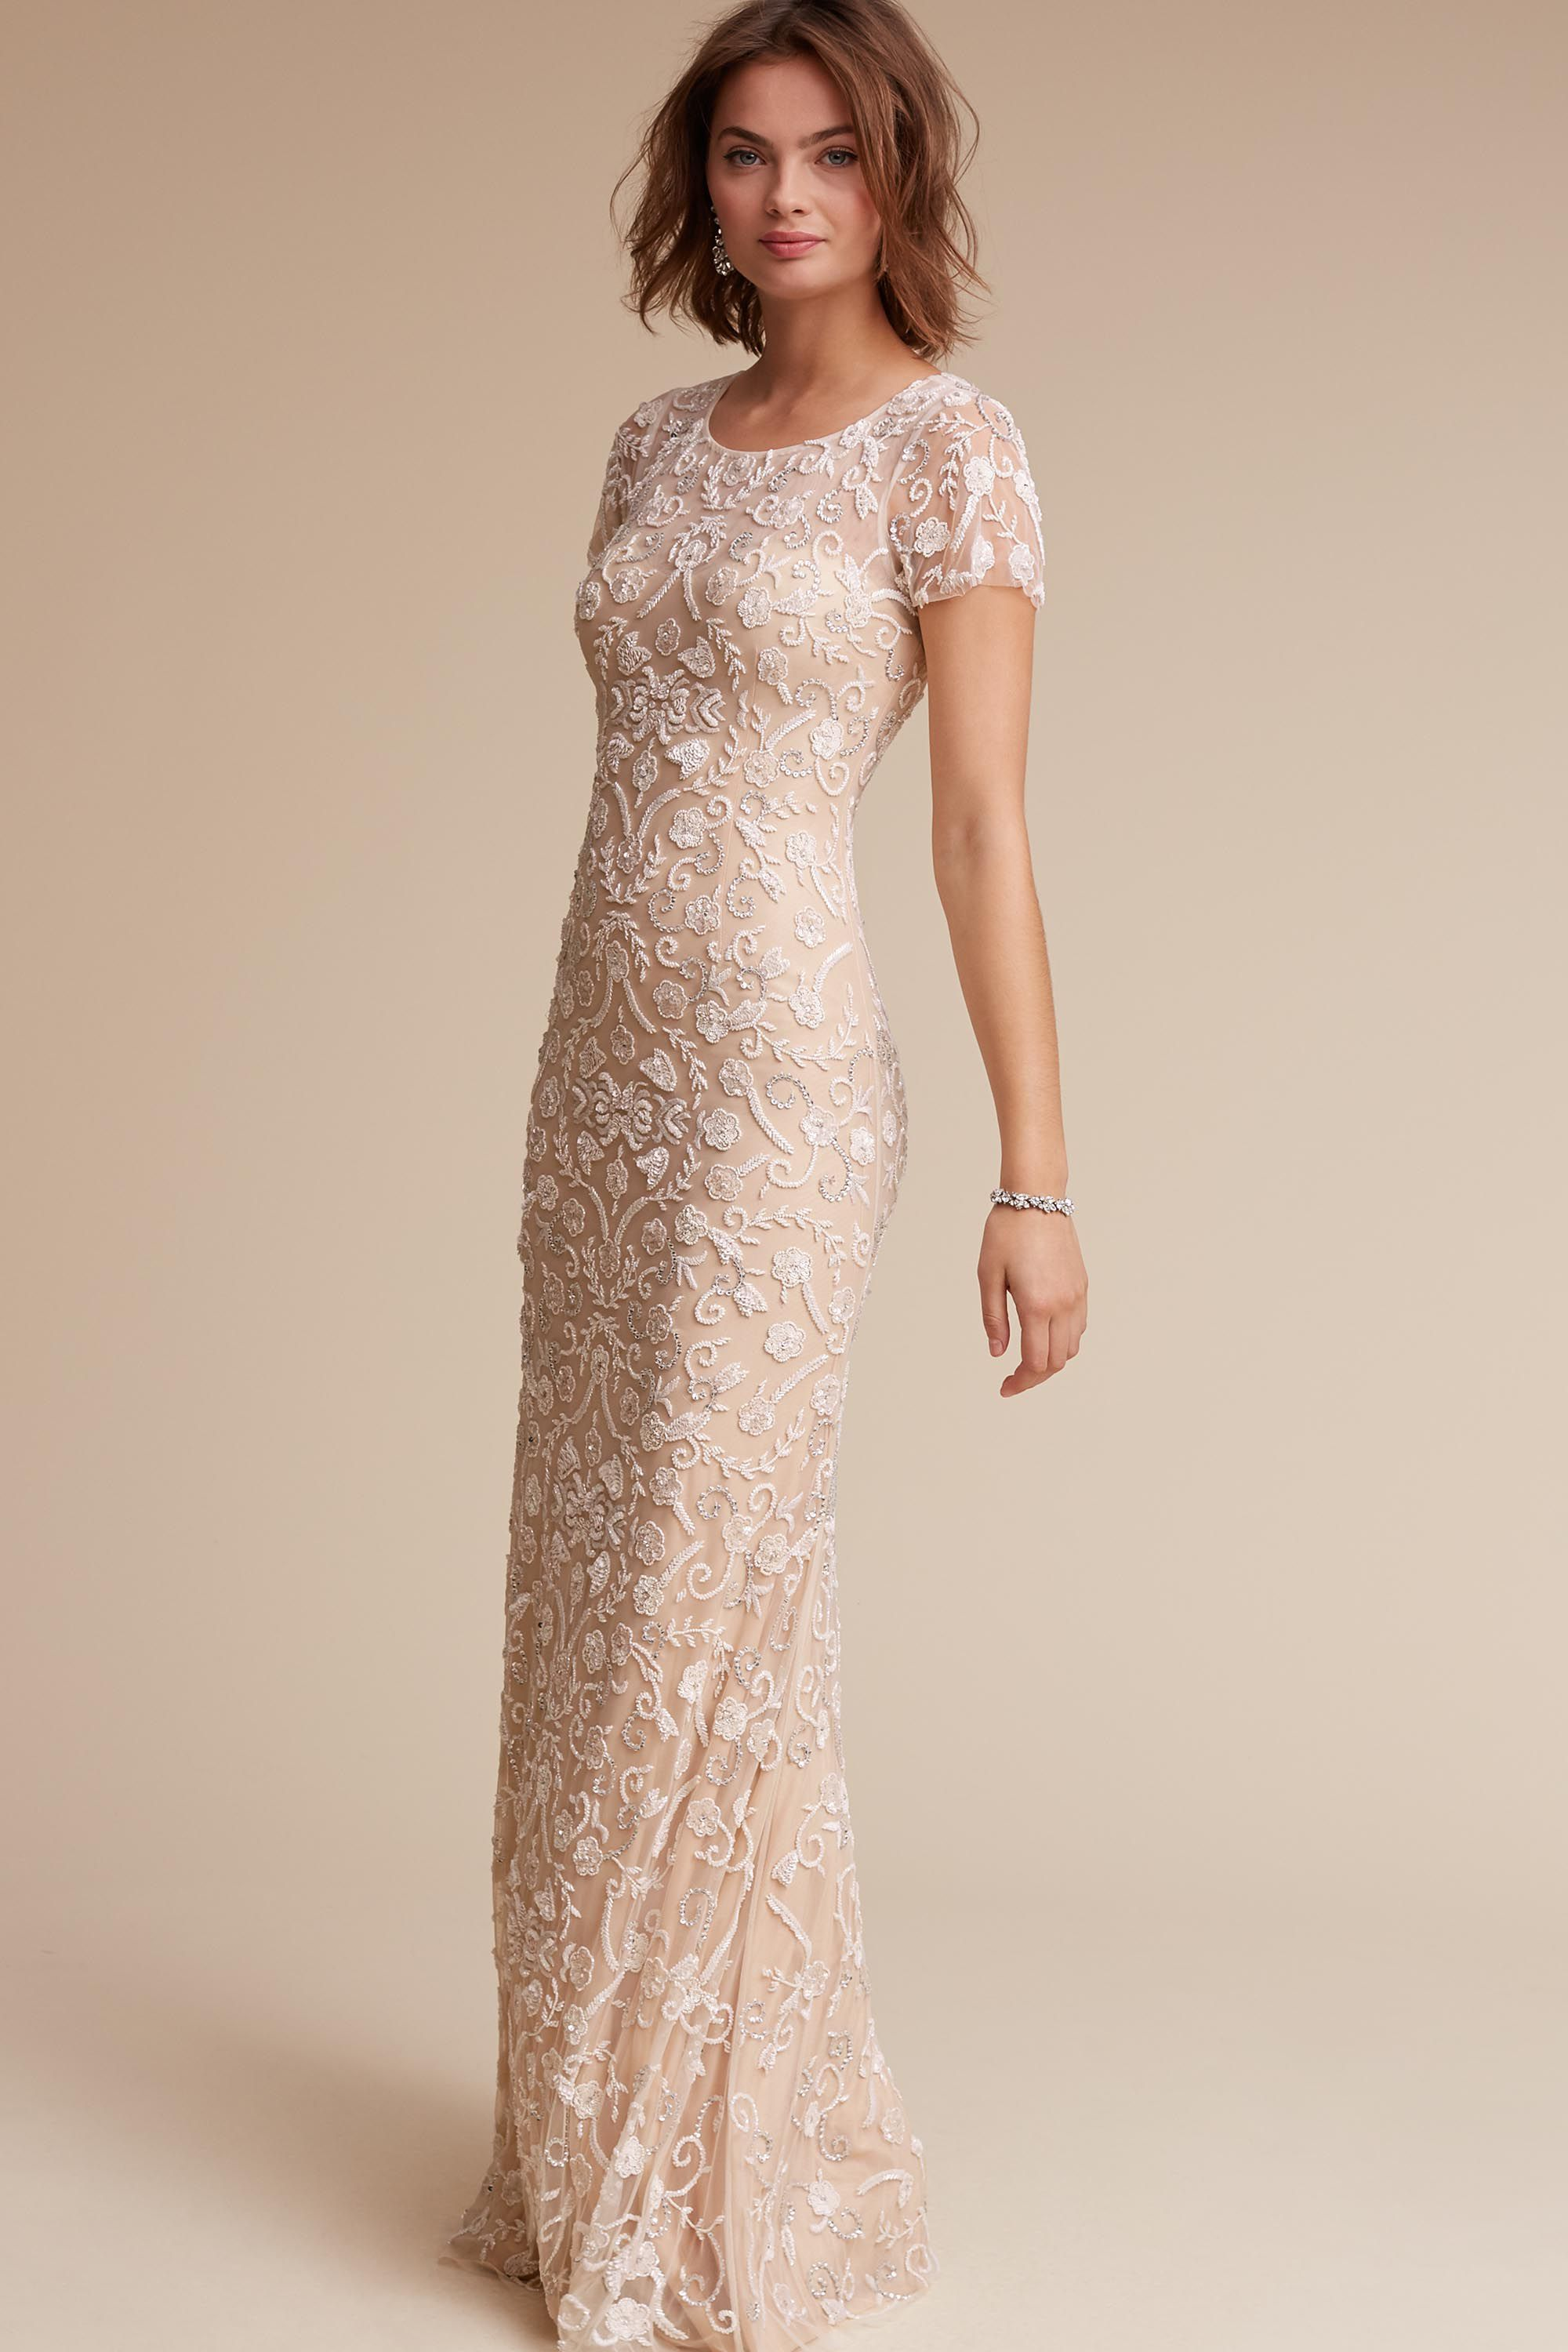 Wedding Dress For Love Essex Gown Hand Beaded Silver Clusters Create A Stunning Motif In This Exquisite Column Featherlight Cap Sleeves Semi Sheer